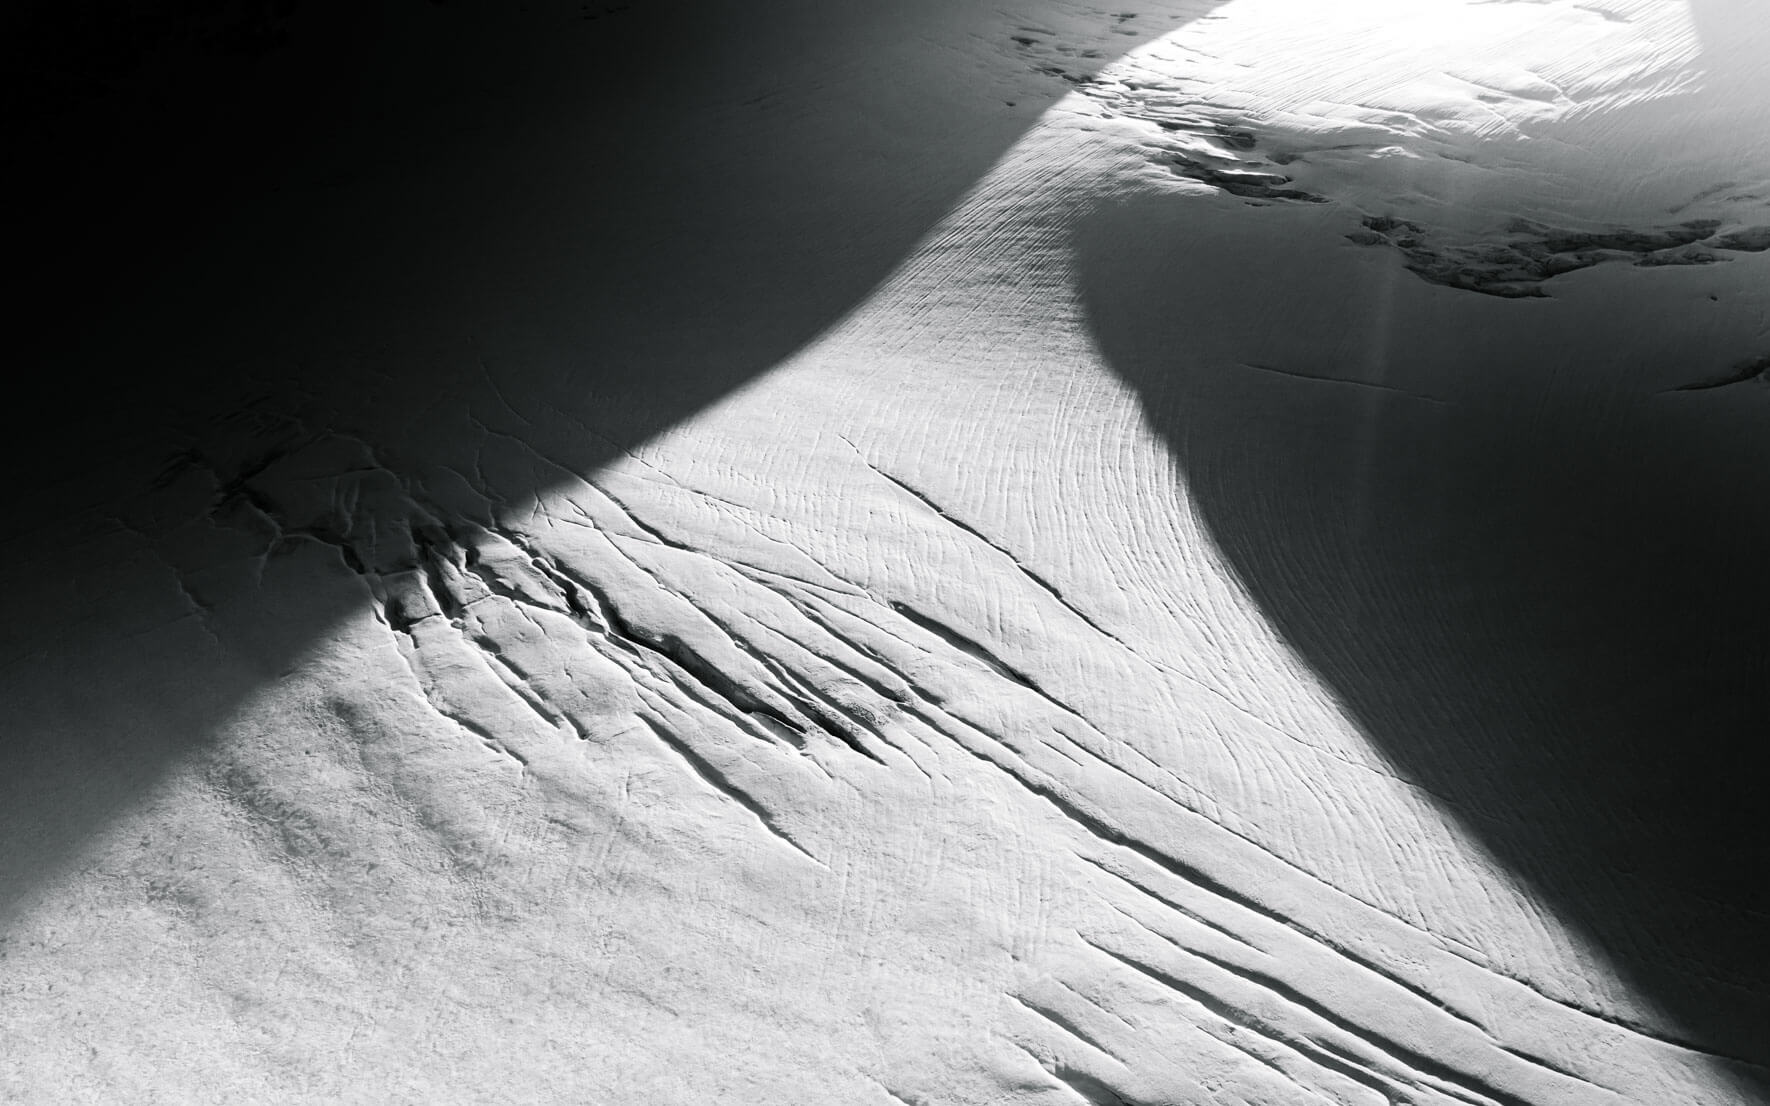 Glacier with glacial crevasses in black and white